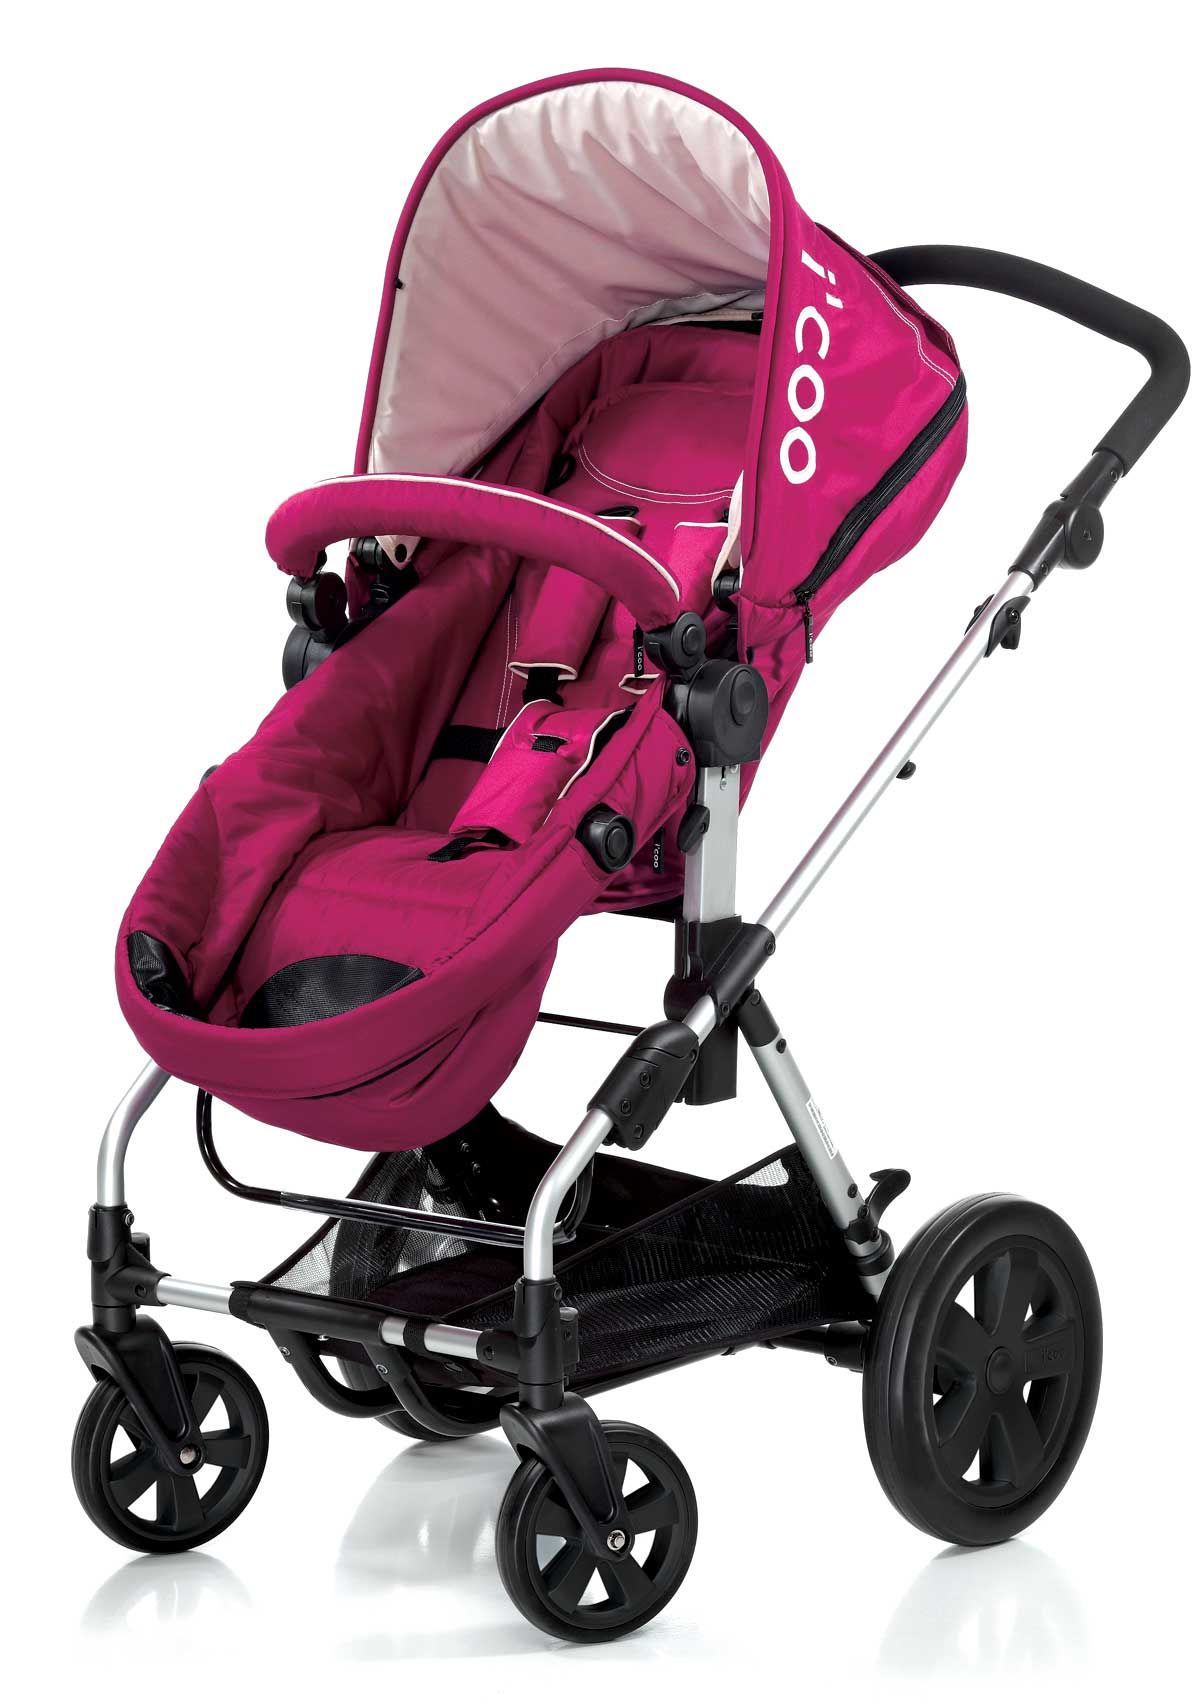 Extra Tall Doll Stroller Strollers 2017